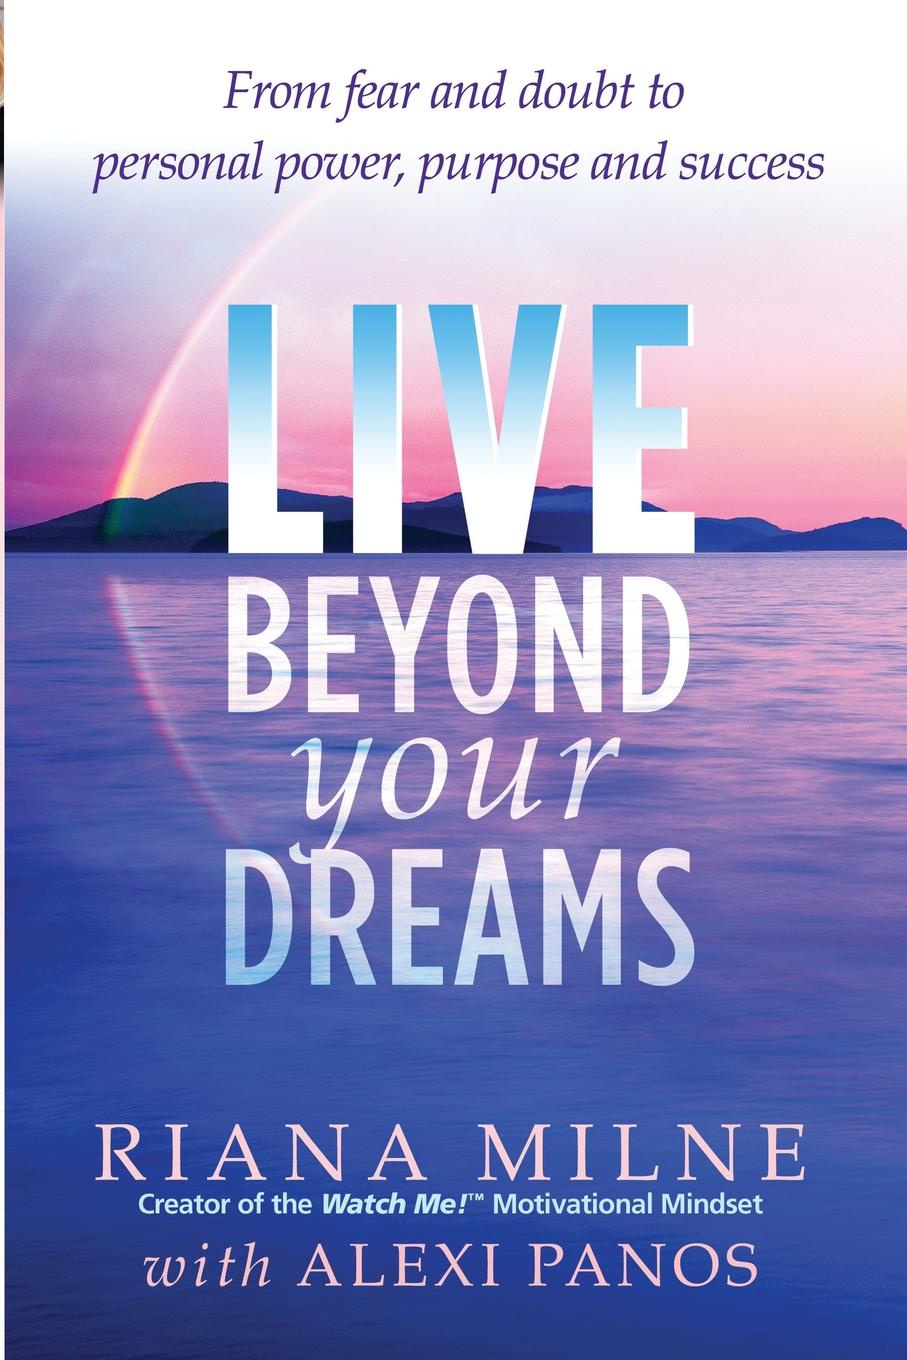 Riana Milne, Alexi Panos Live Beyond Your Dreams. From Fear and Doubt to Personal Power, Purpose and Success beyond reasonable doubt